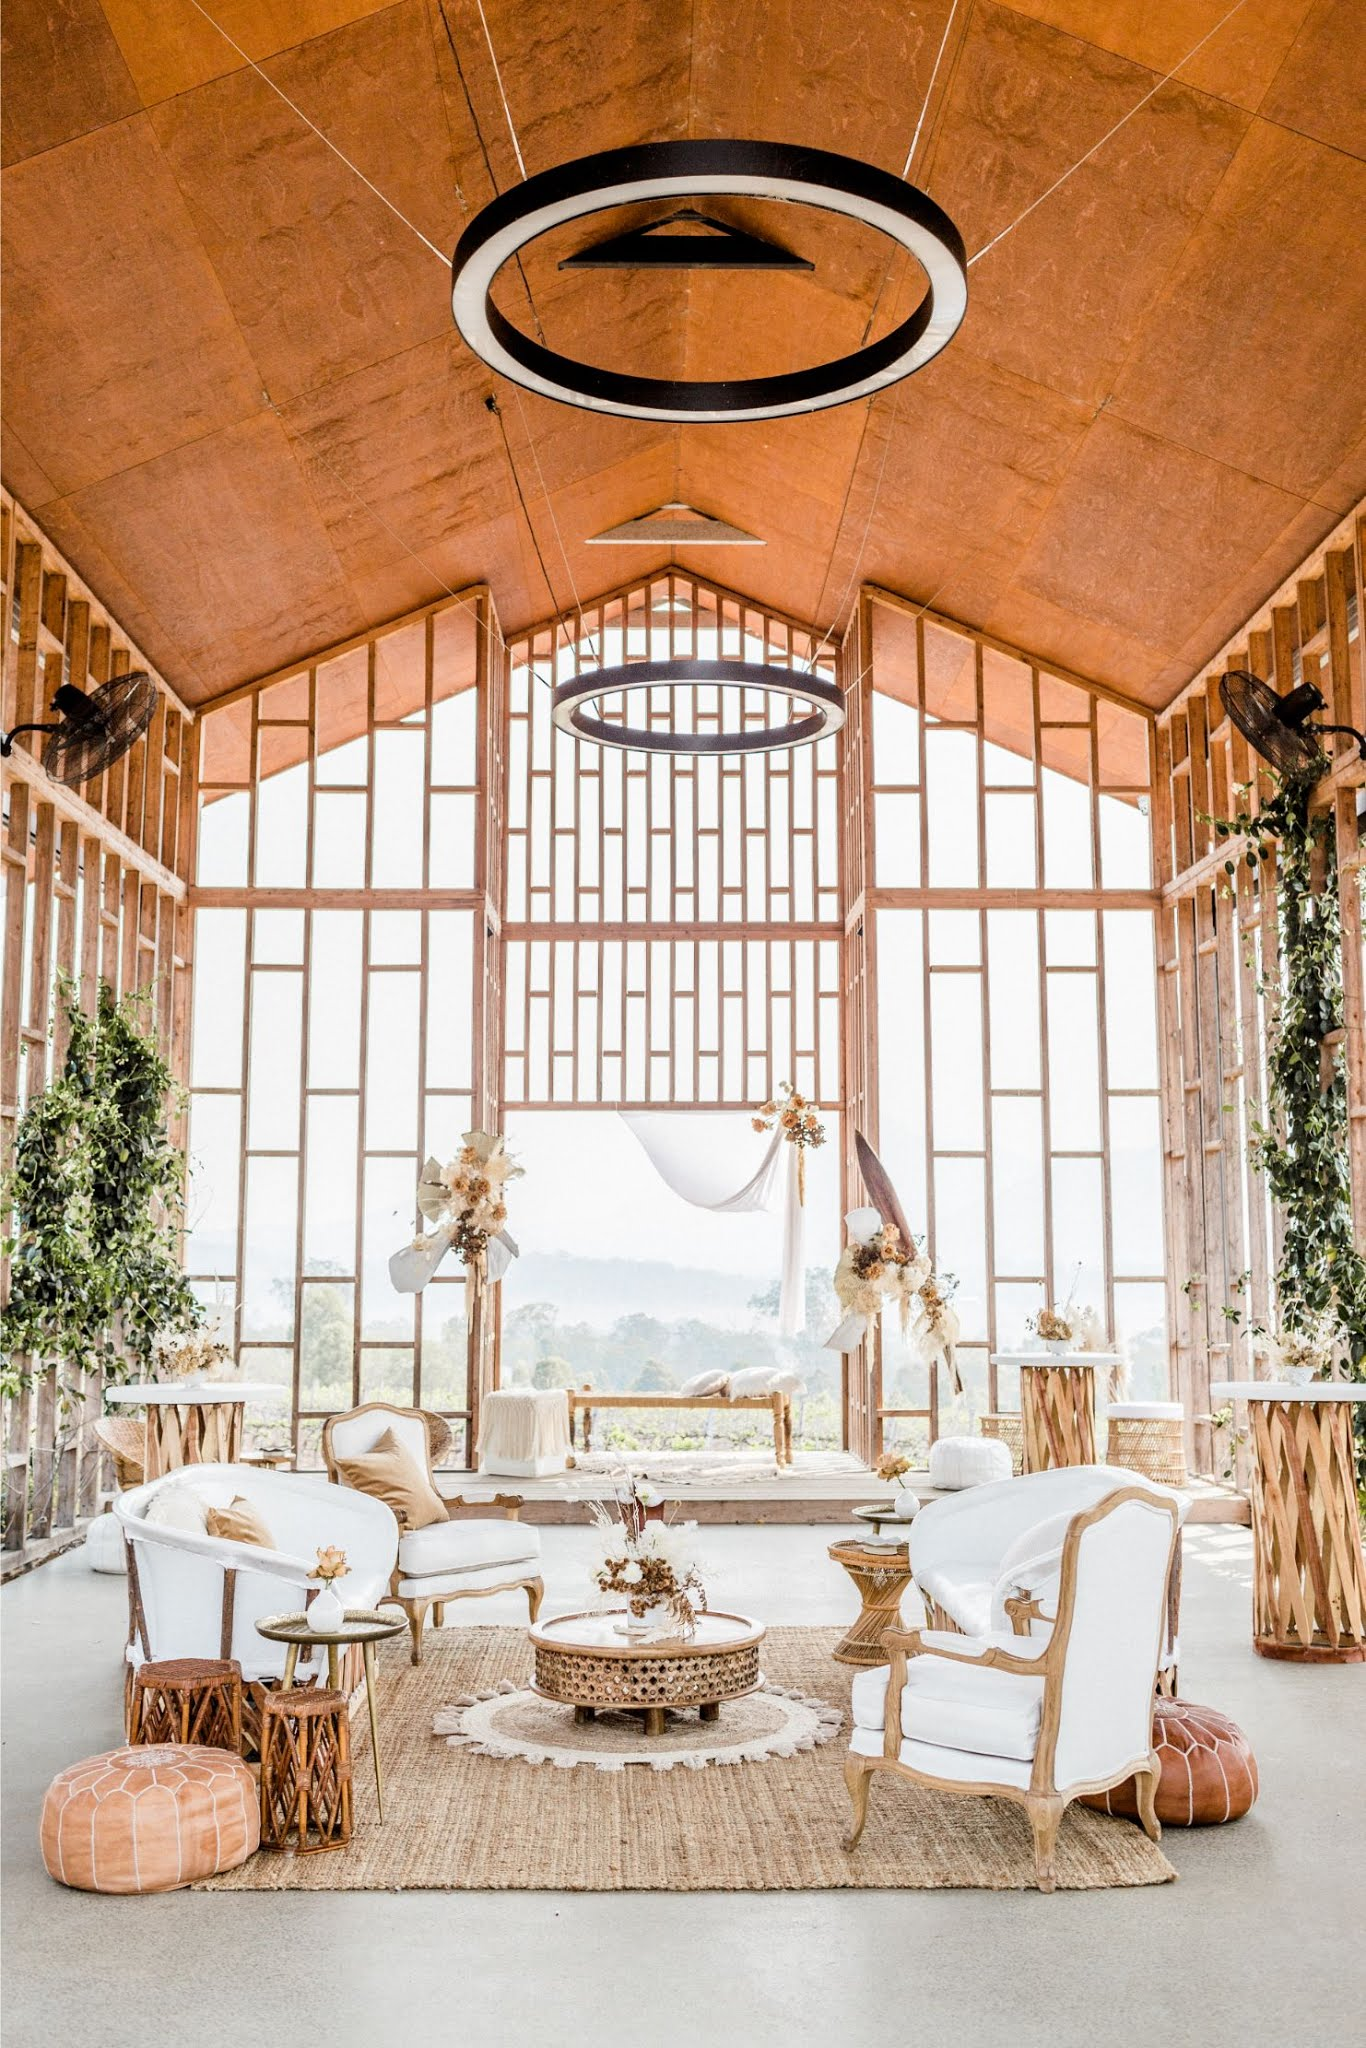 STYLED: COUNTRY LUXE WEDDING STYLING | SCENIC RIM BRIDE TURNS ONE